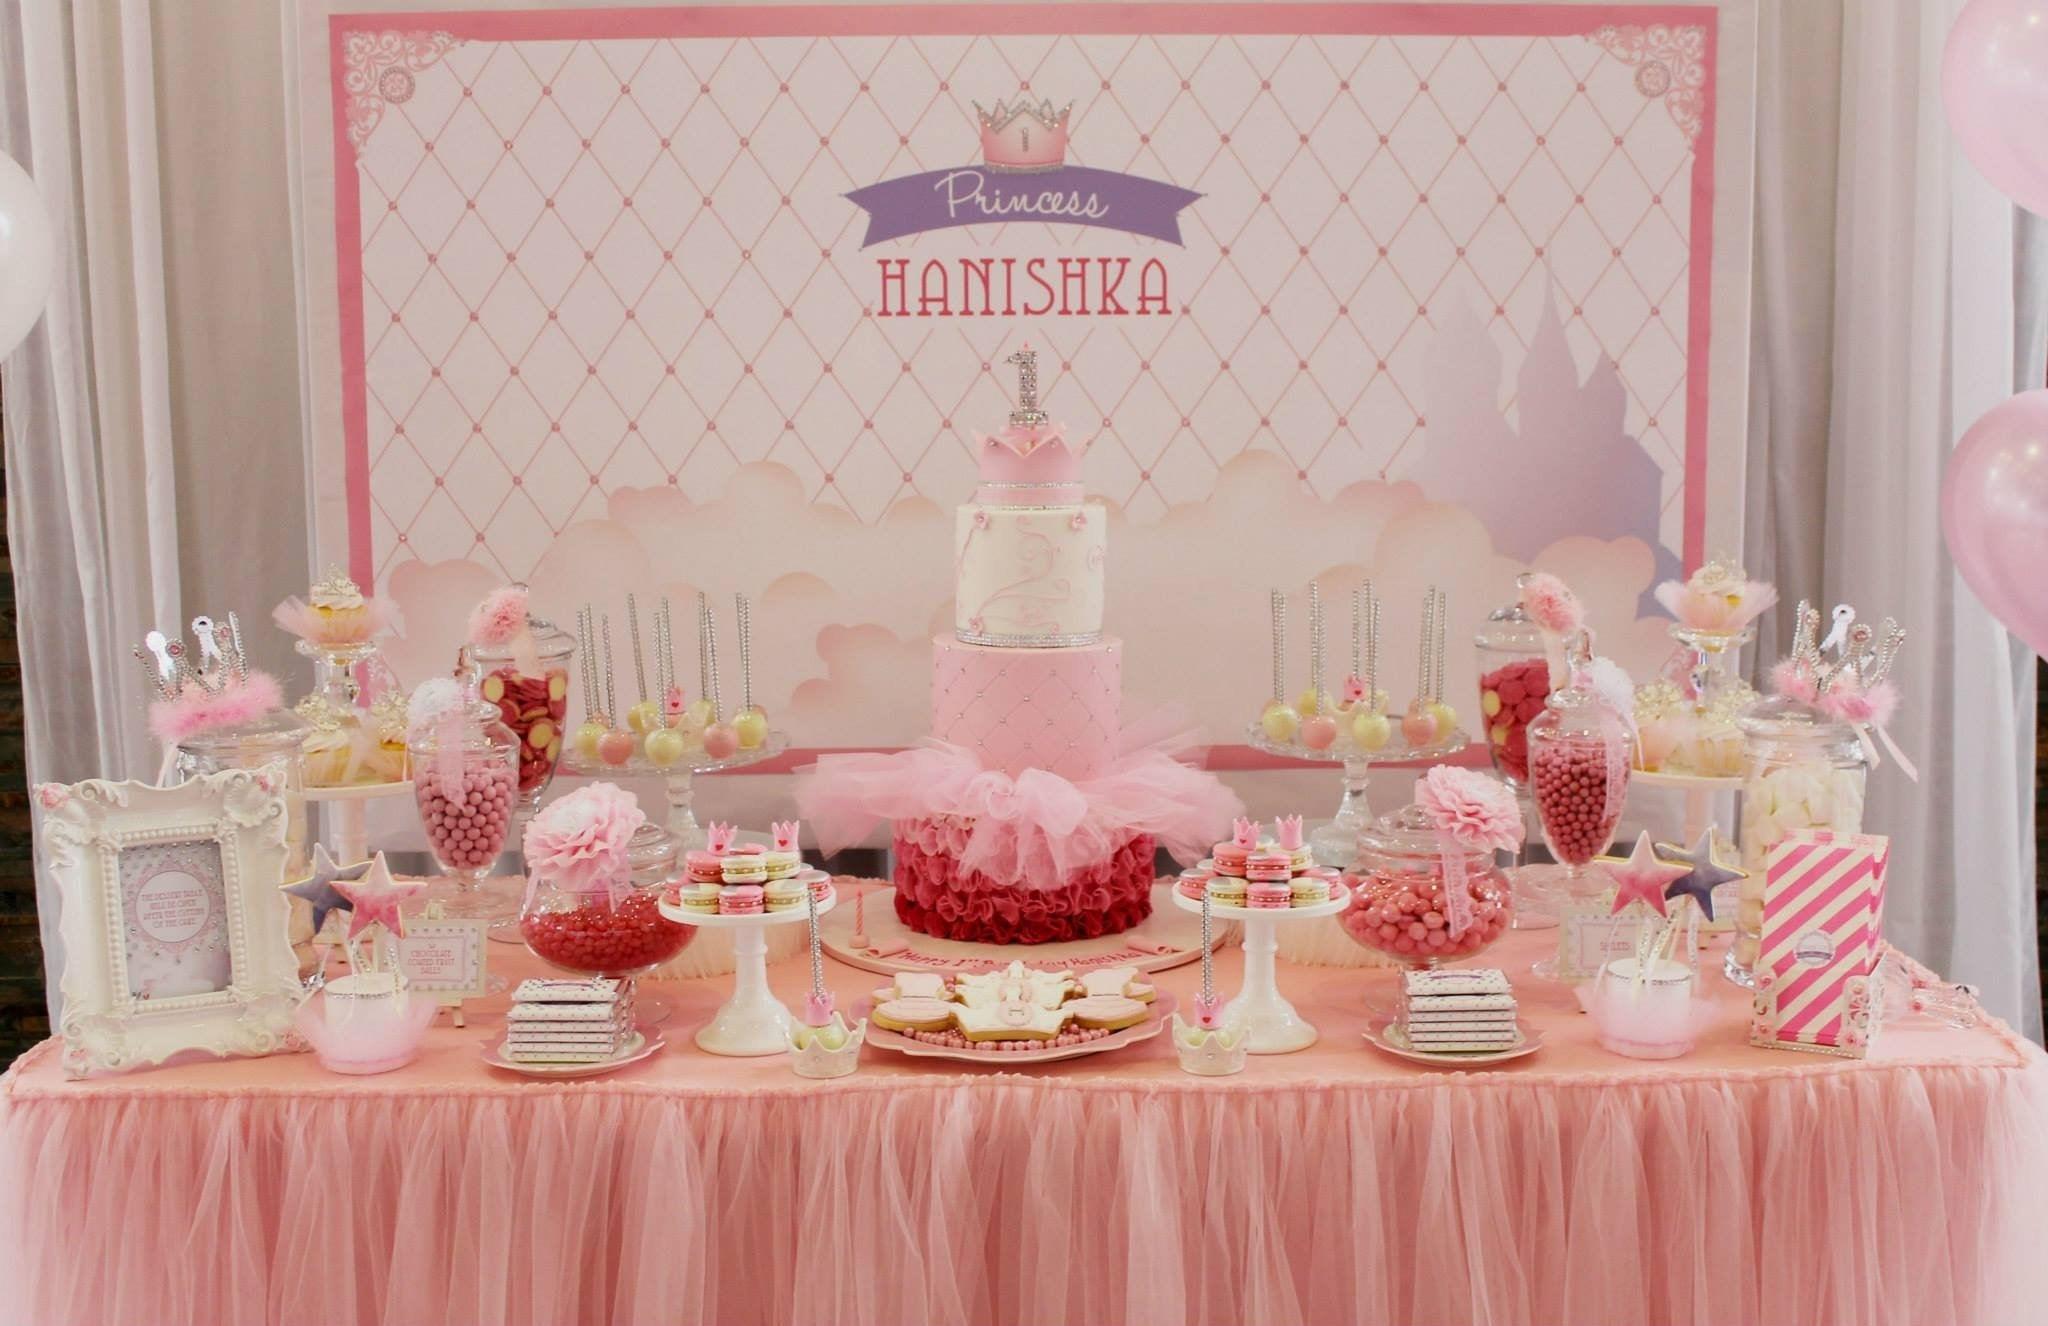 10 Perfect Princess 1St Birthday Party Ideas bling princess first birthday party birthday party ideas themes 2020